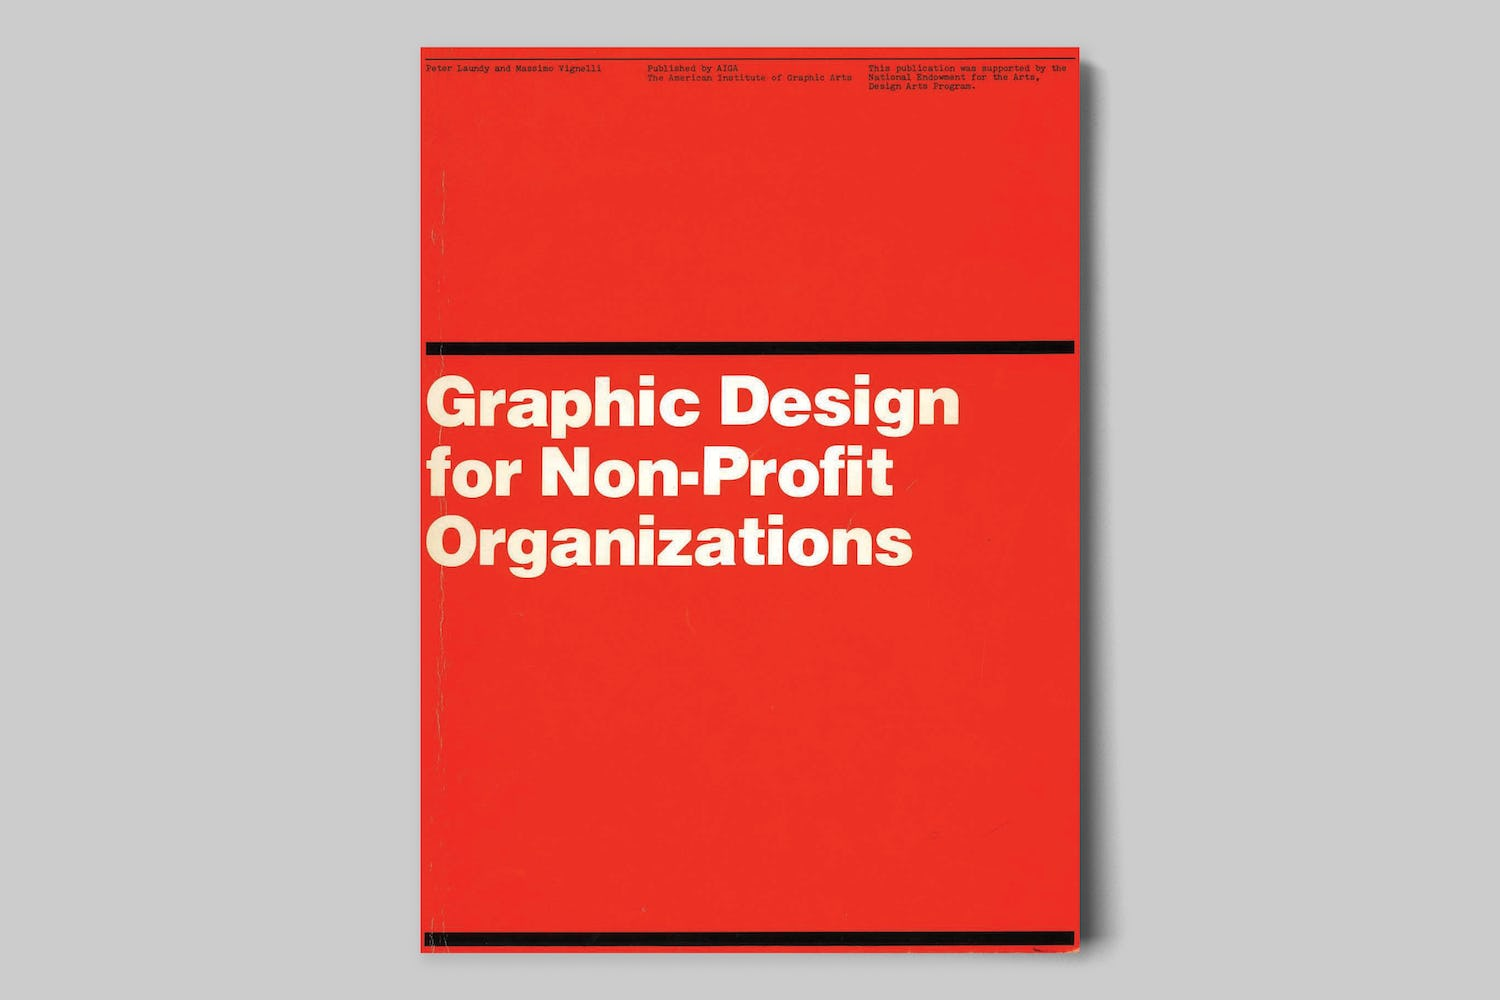 Creative Studio Releases Five Coveted, Free-To-Download Graphic Design Books